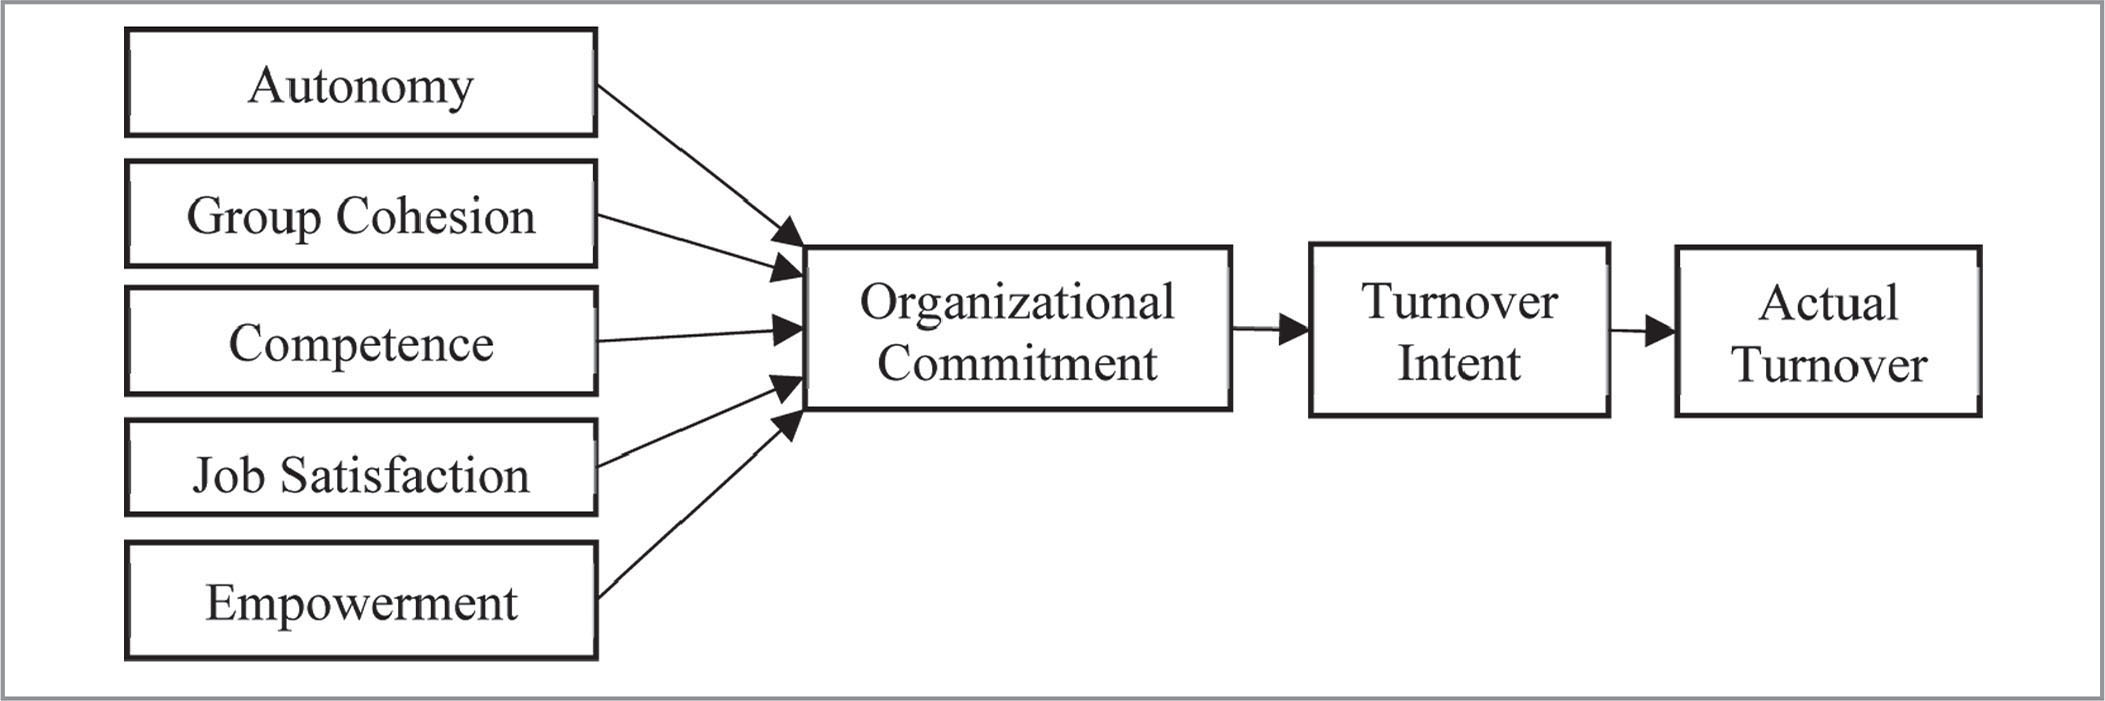 Bedside Report Conceptual Framework Diagram Trusted Schematics Kenwood Kdc 122 Wiring 138 Factors Influencing Organizational Commitment And Turnover In Nurse